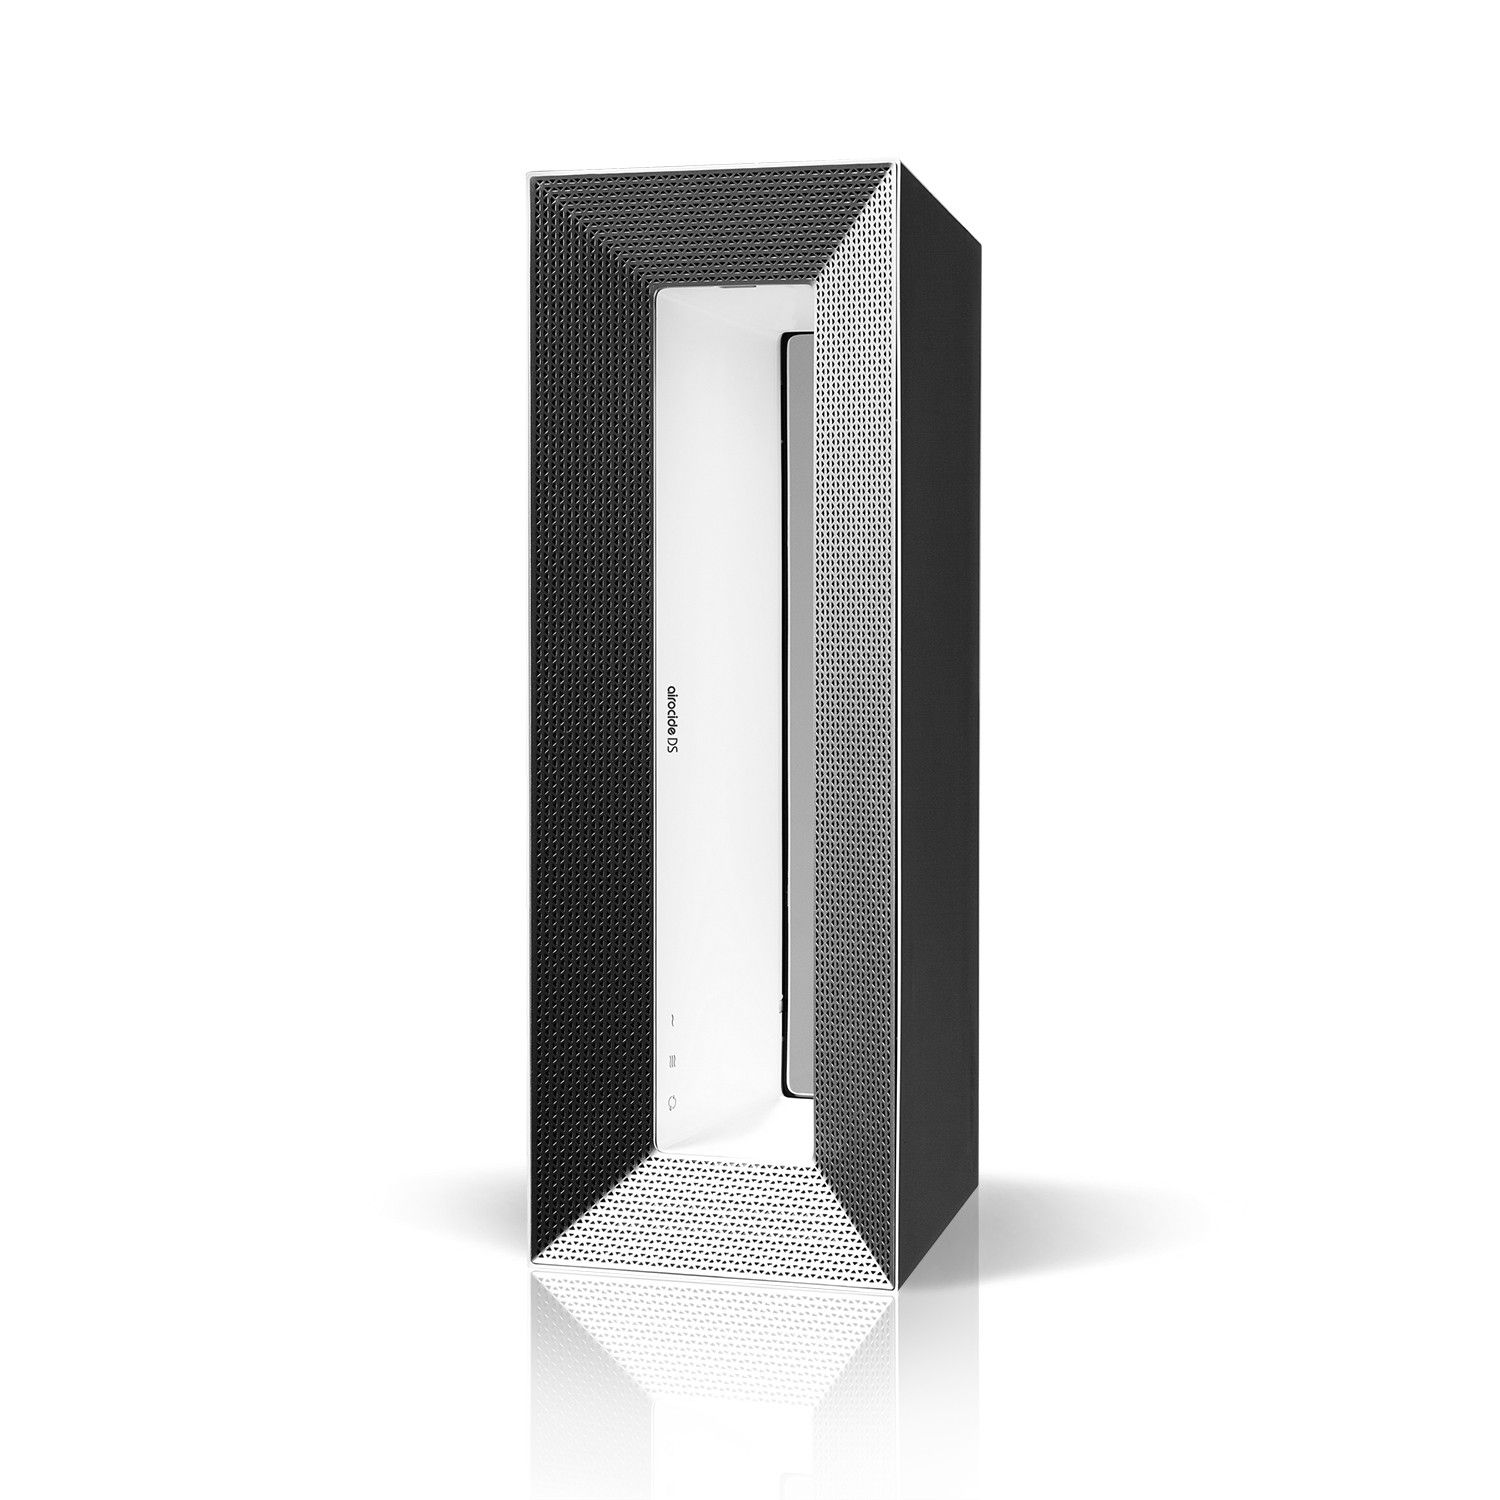 Airocide Air Purifier DS, $499.00.